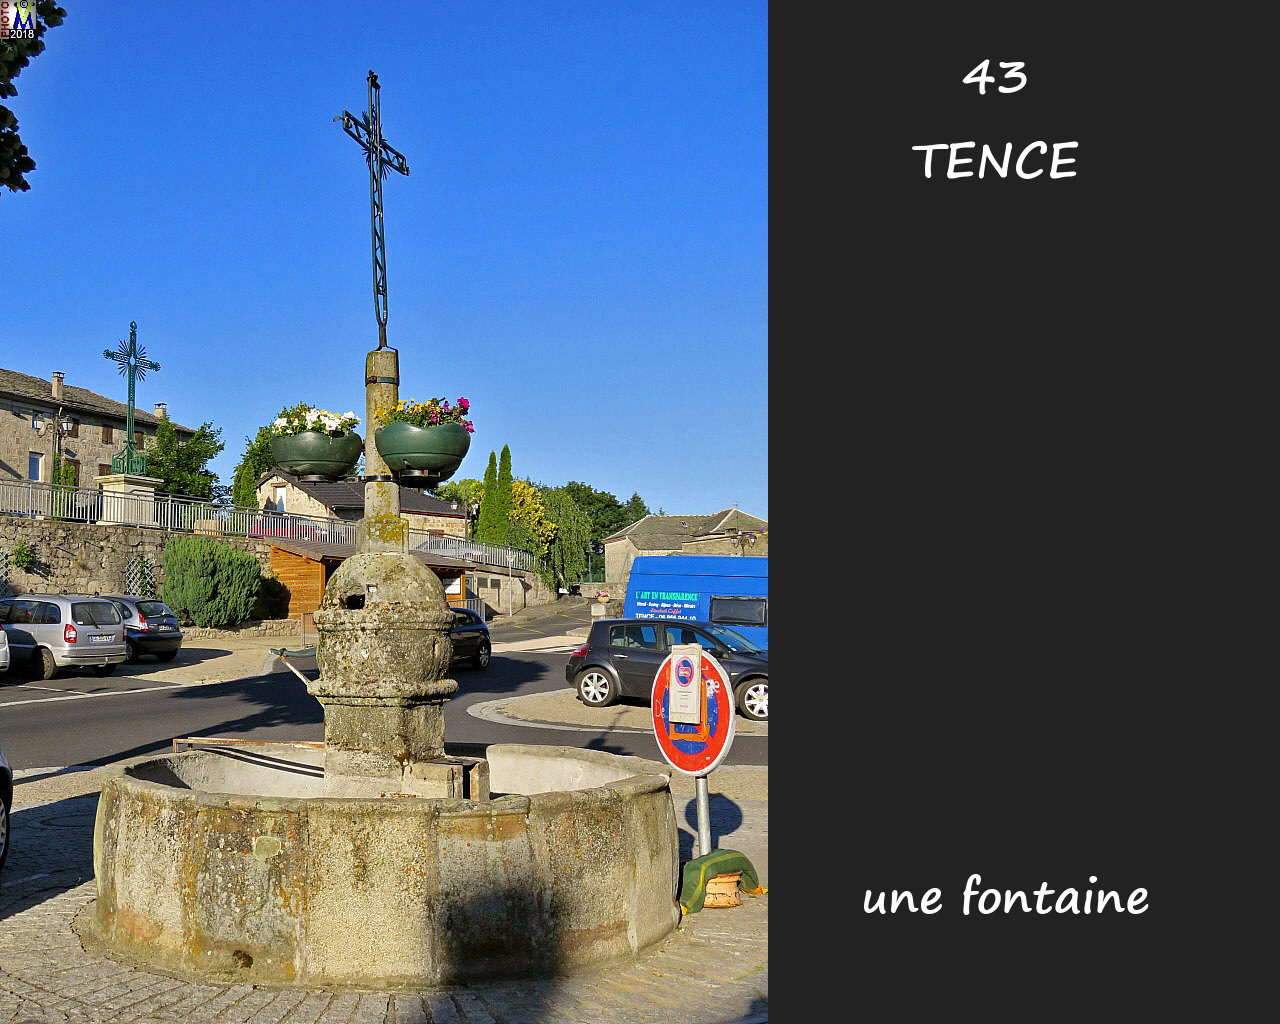 43TENCE_fontaine_120.jpg